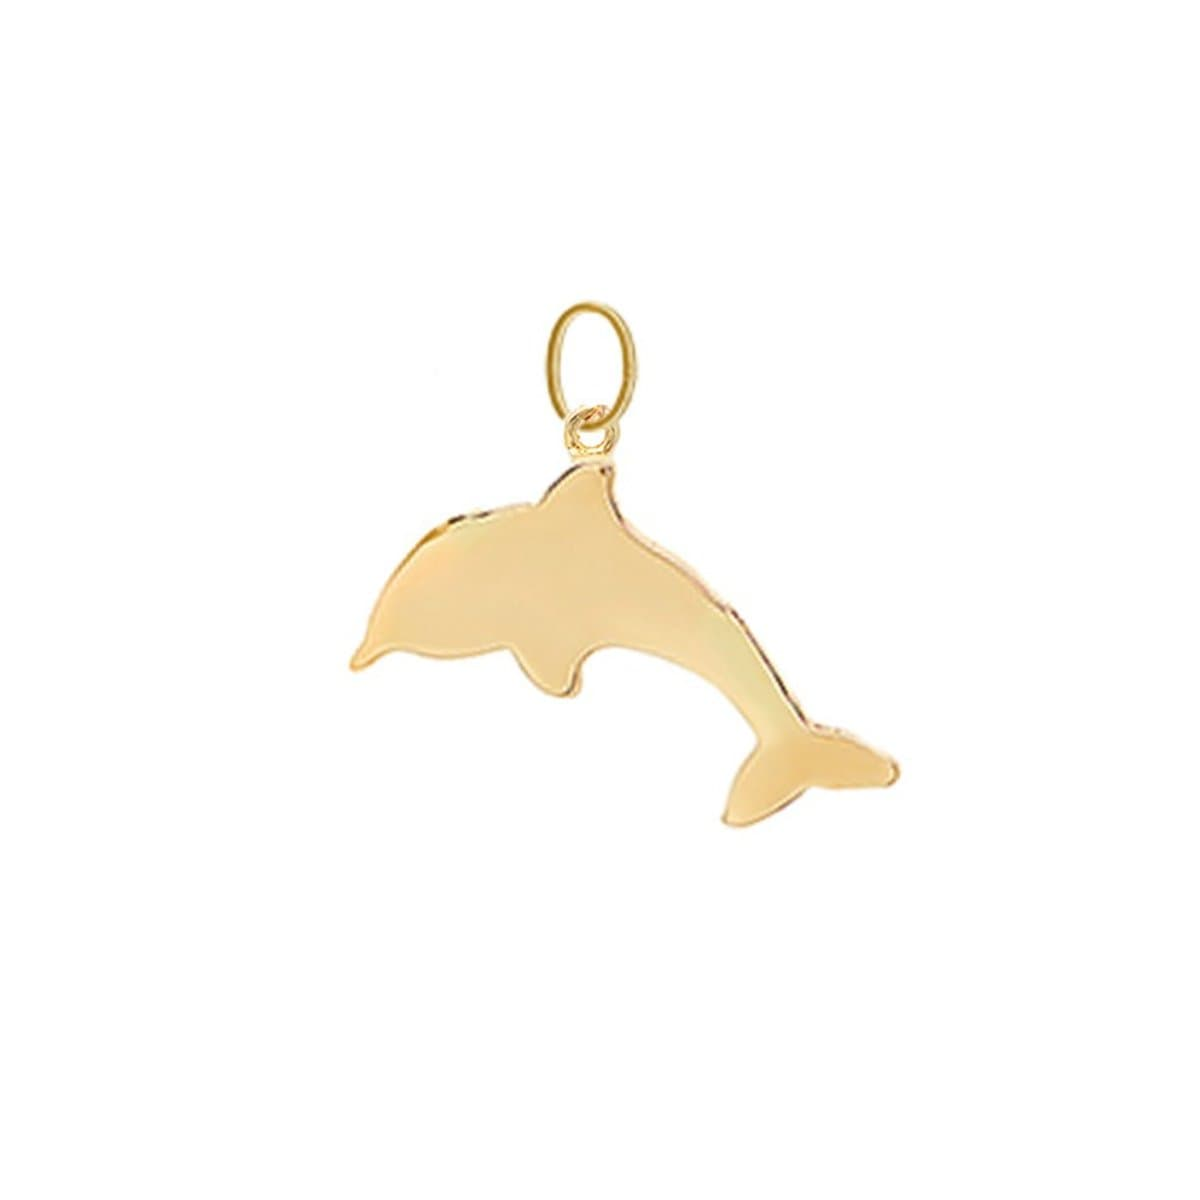 Dolphin Charm Yellow Gold Caitlin Nicole Curated Los Angeles